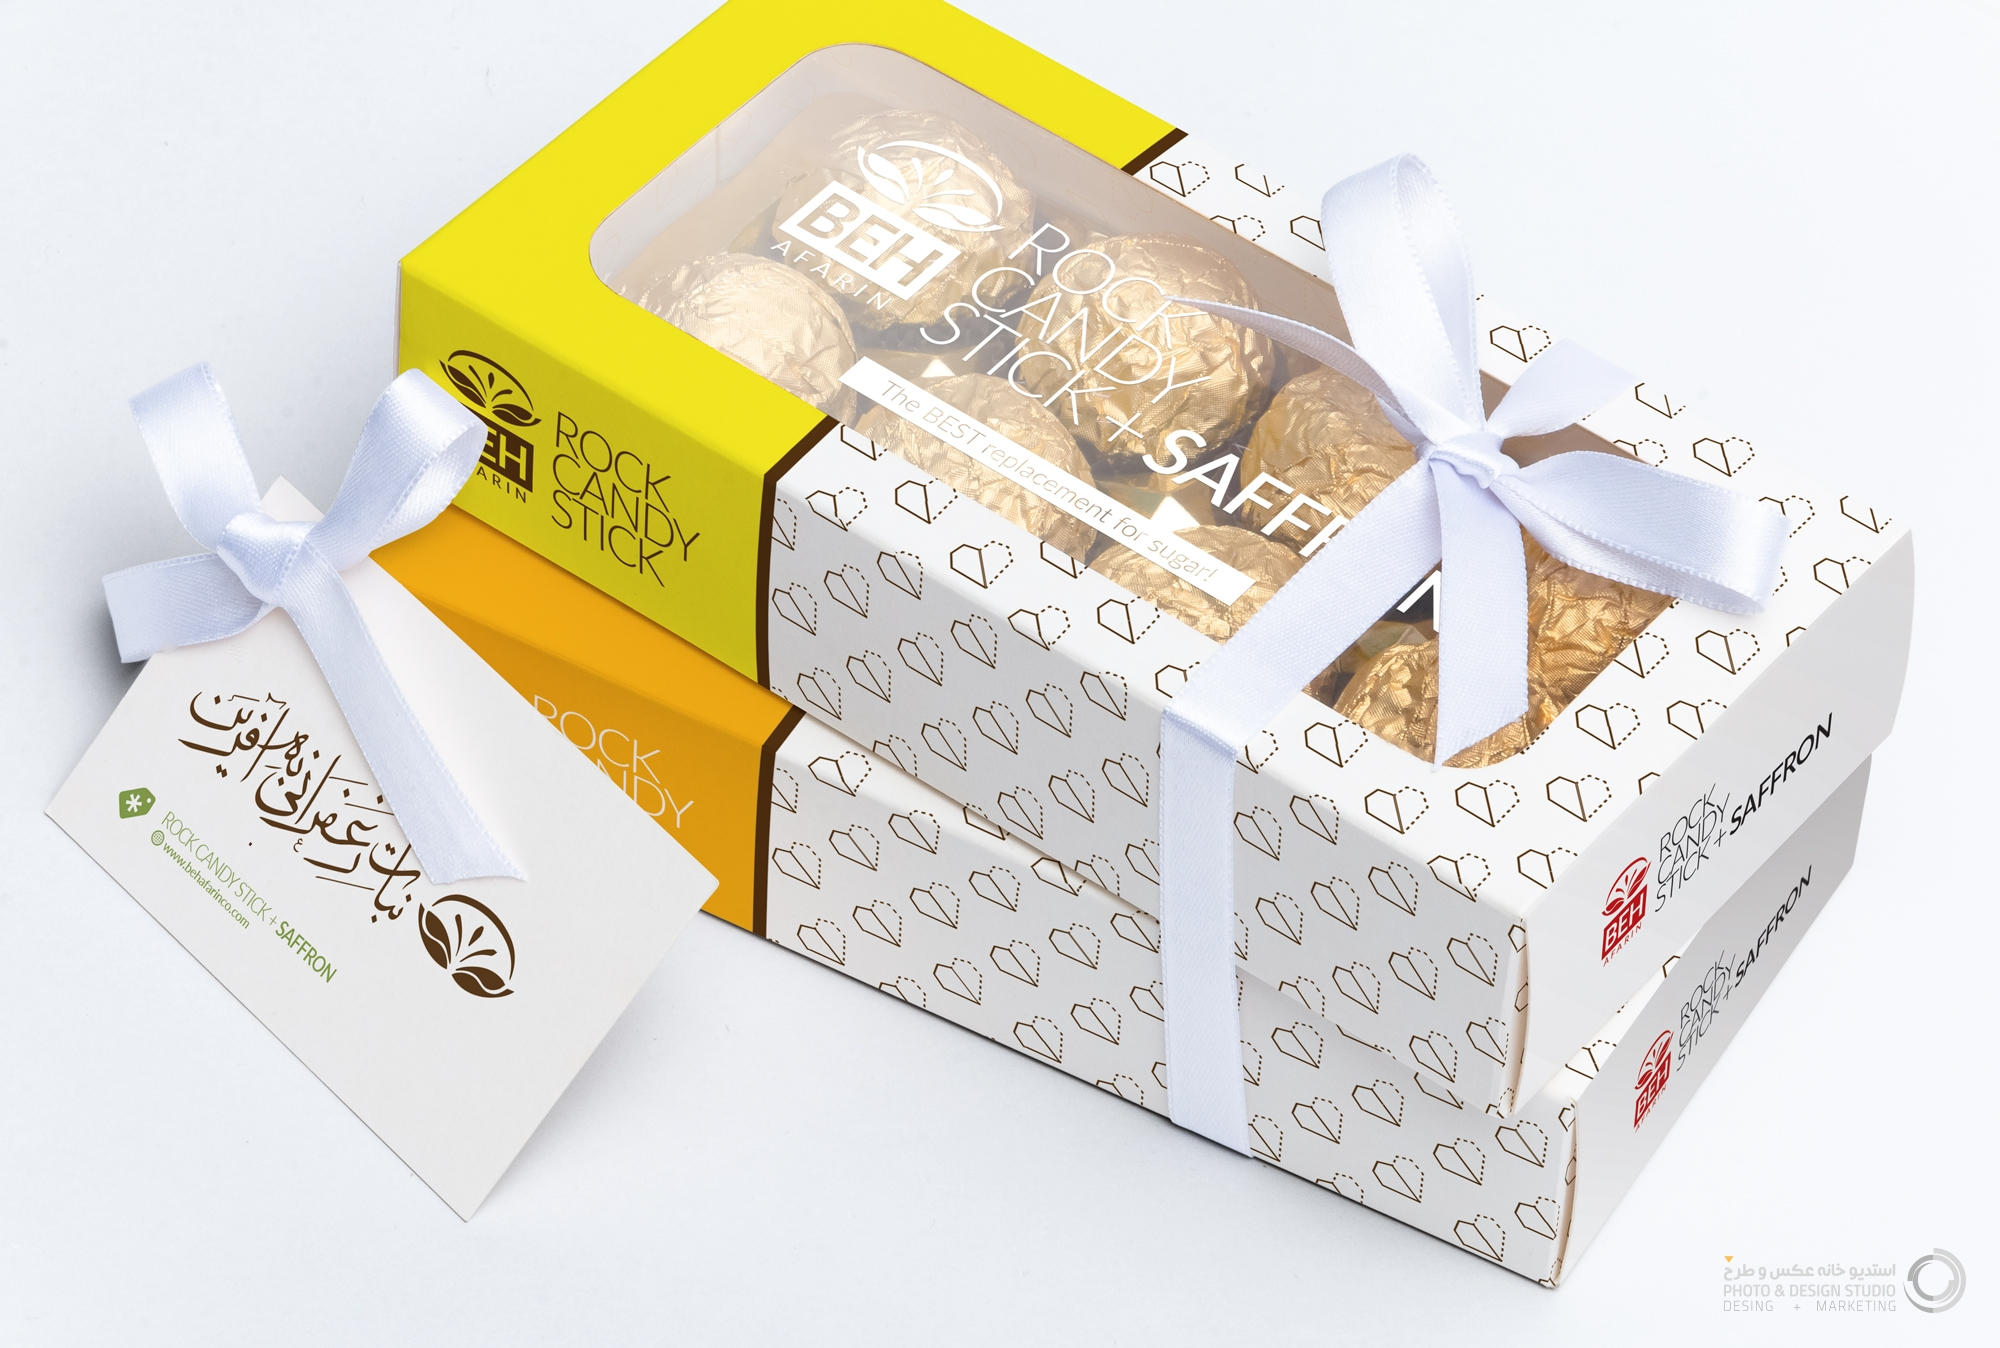 packaging, design, idea, product, food, industrial, commercial, marketing, advertising